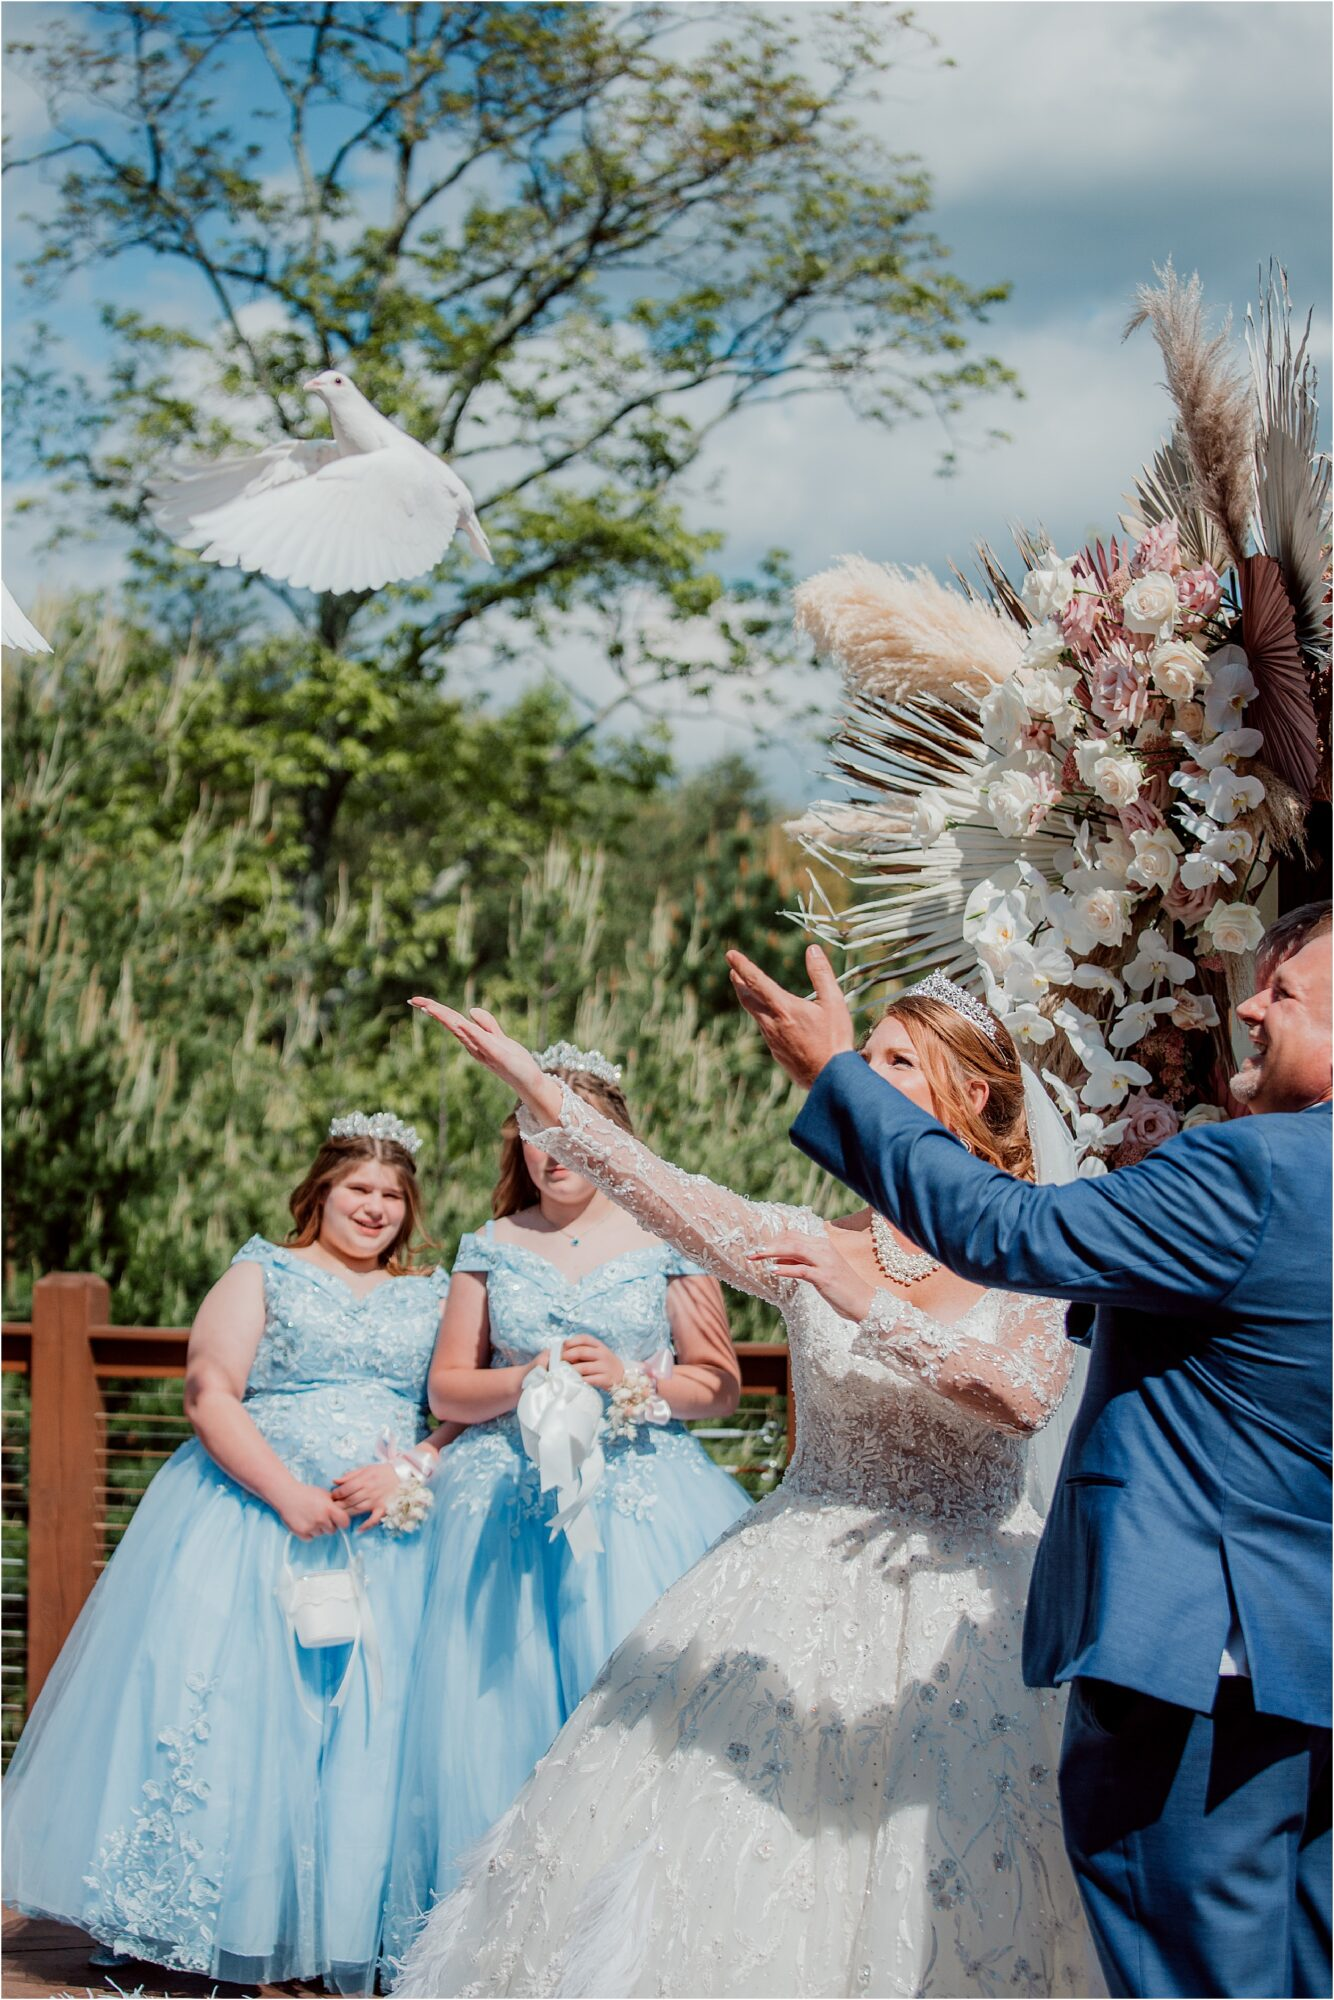 bride and groom release Doves at wedding ceremony